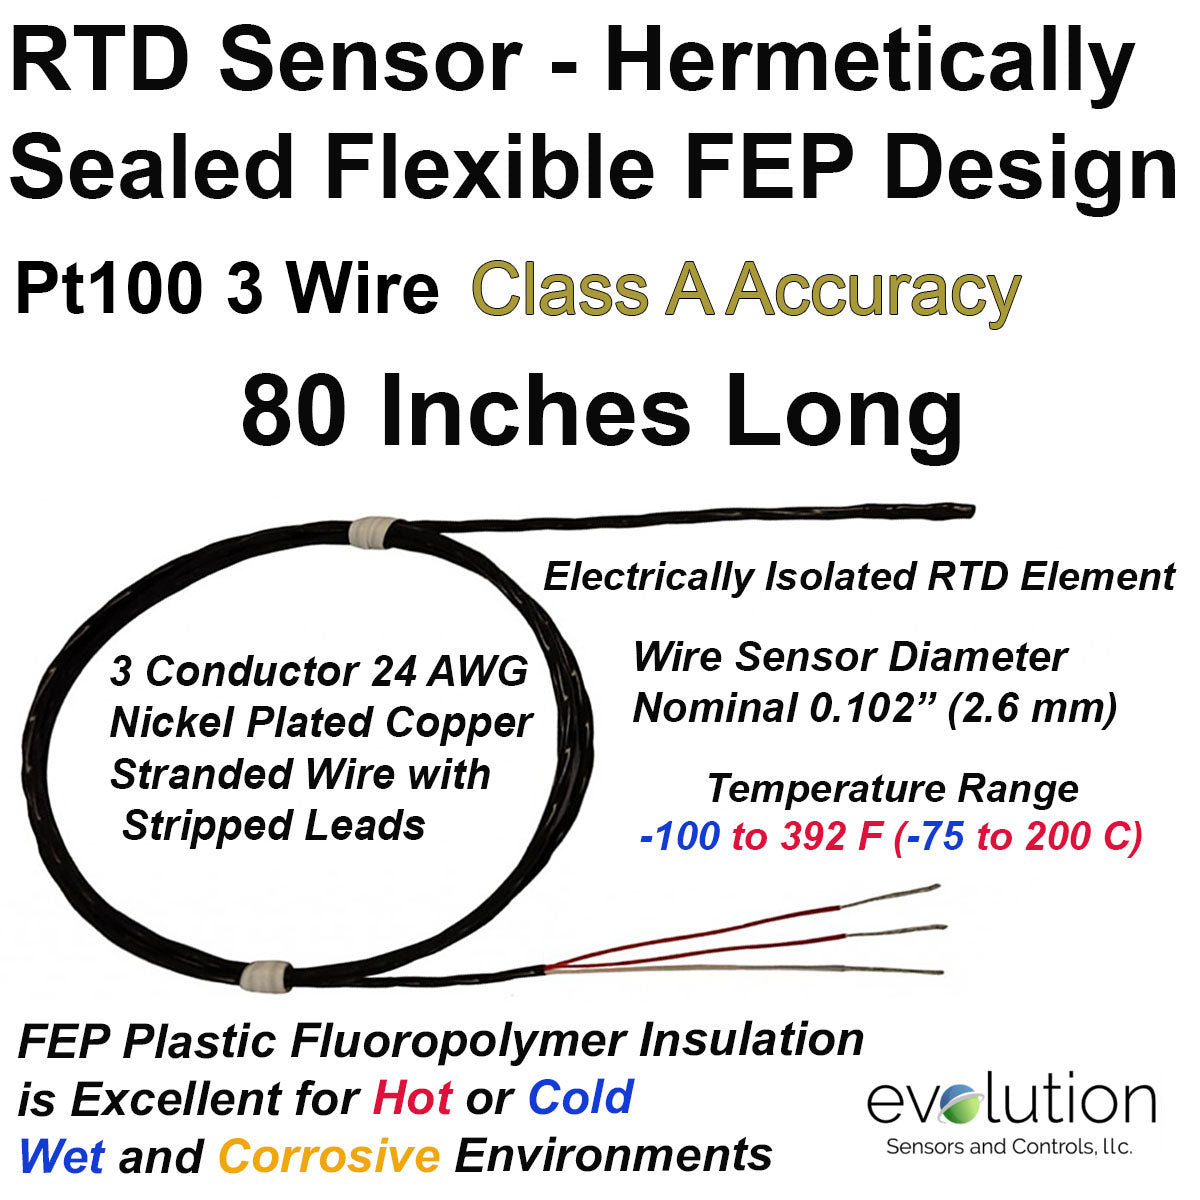 Hermetically sealed rtd sensor fep insulated 3 wire class a accuracy hermetically sealed rtd sensor fep insulated 3 wire class a accuracy 80 long greentooth Image collections